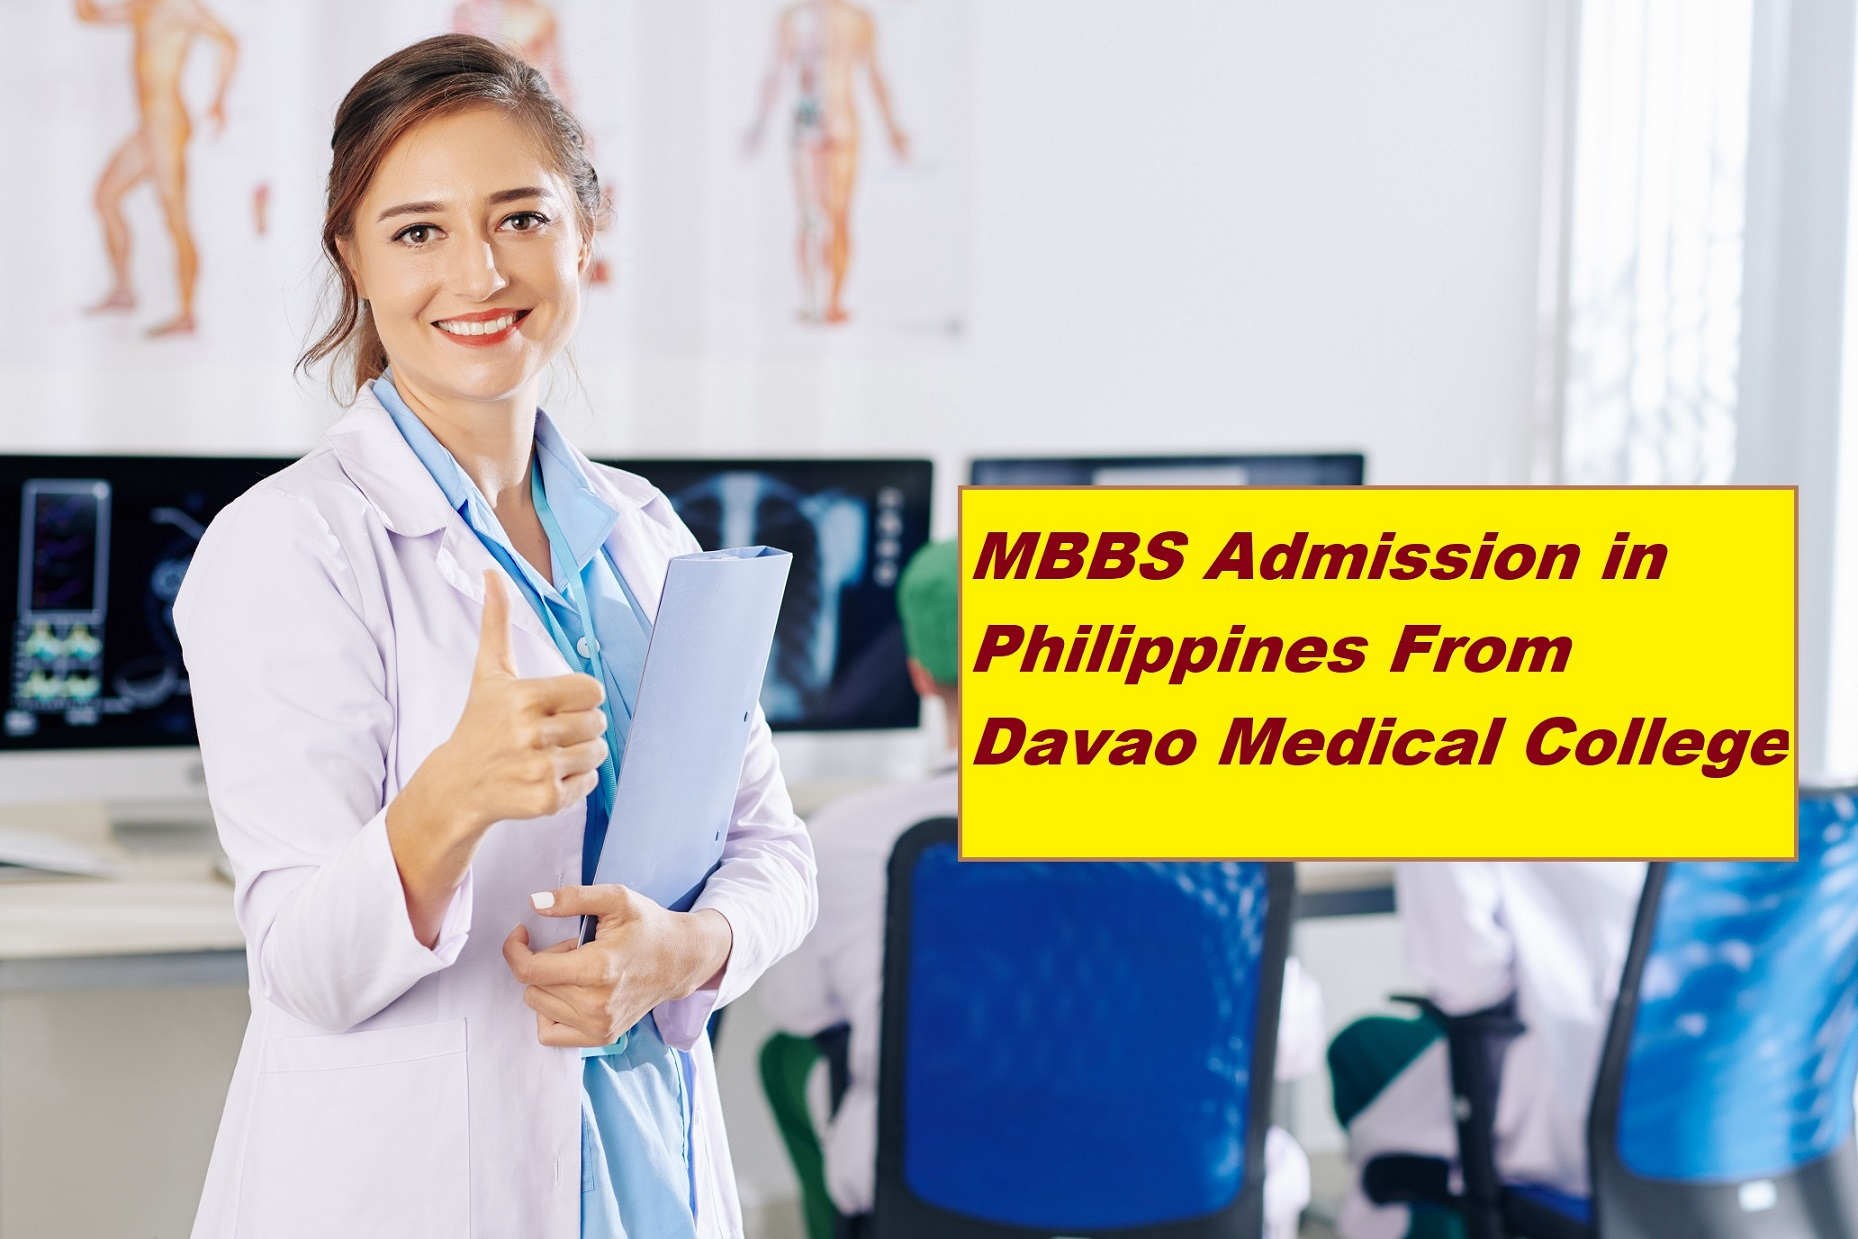 Davao Medical College remains the top choice for students looking for mbbs admission in Philippines